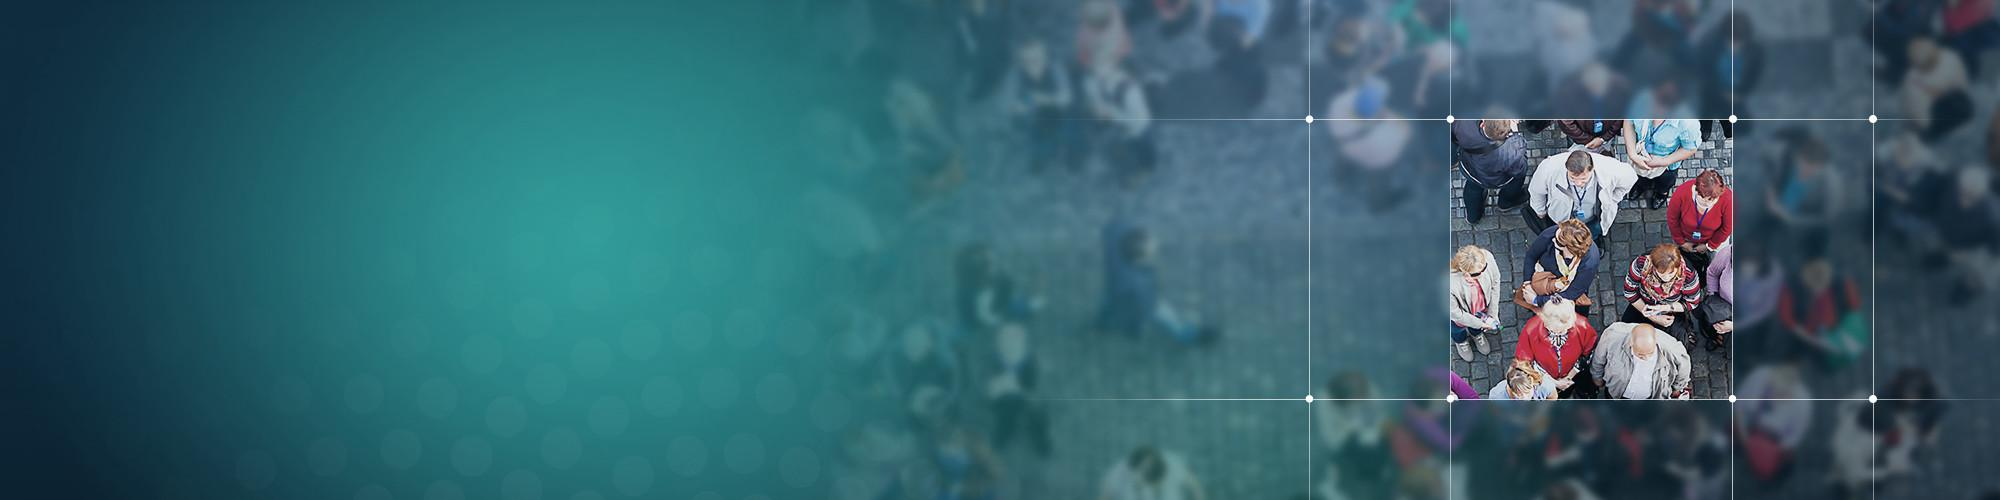 Crowd of people old town square with a bluegreen layer